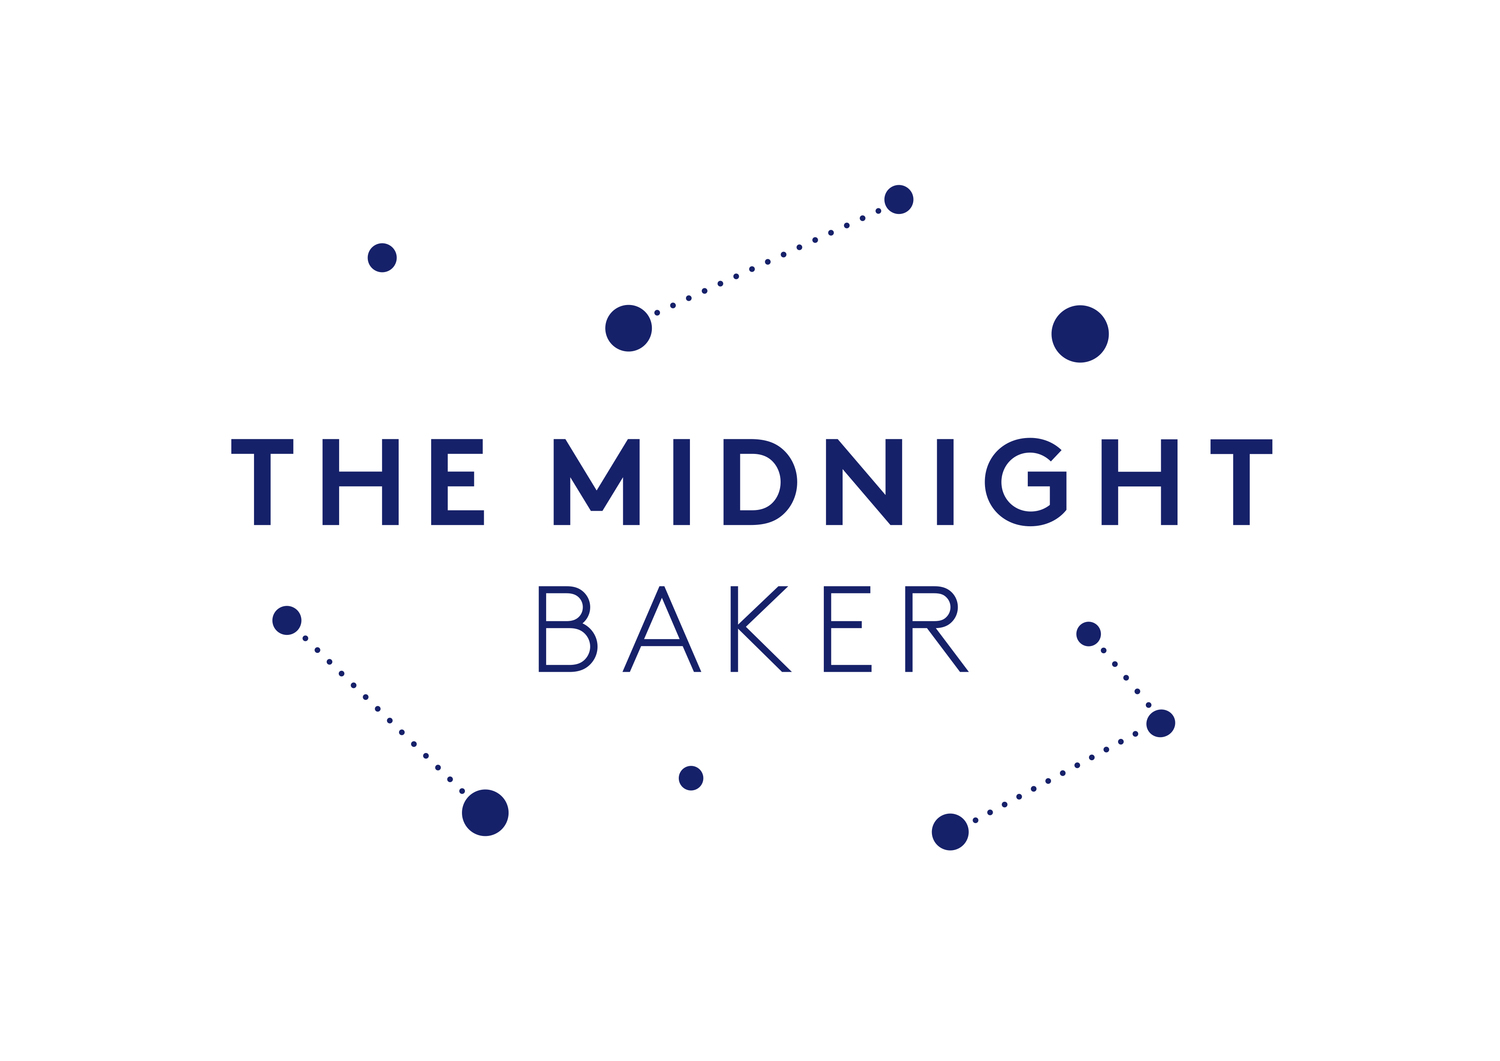 The Midnight Baker